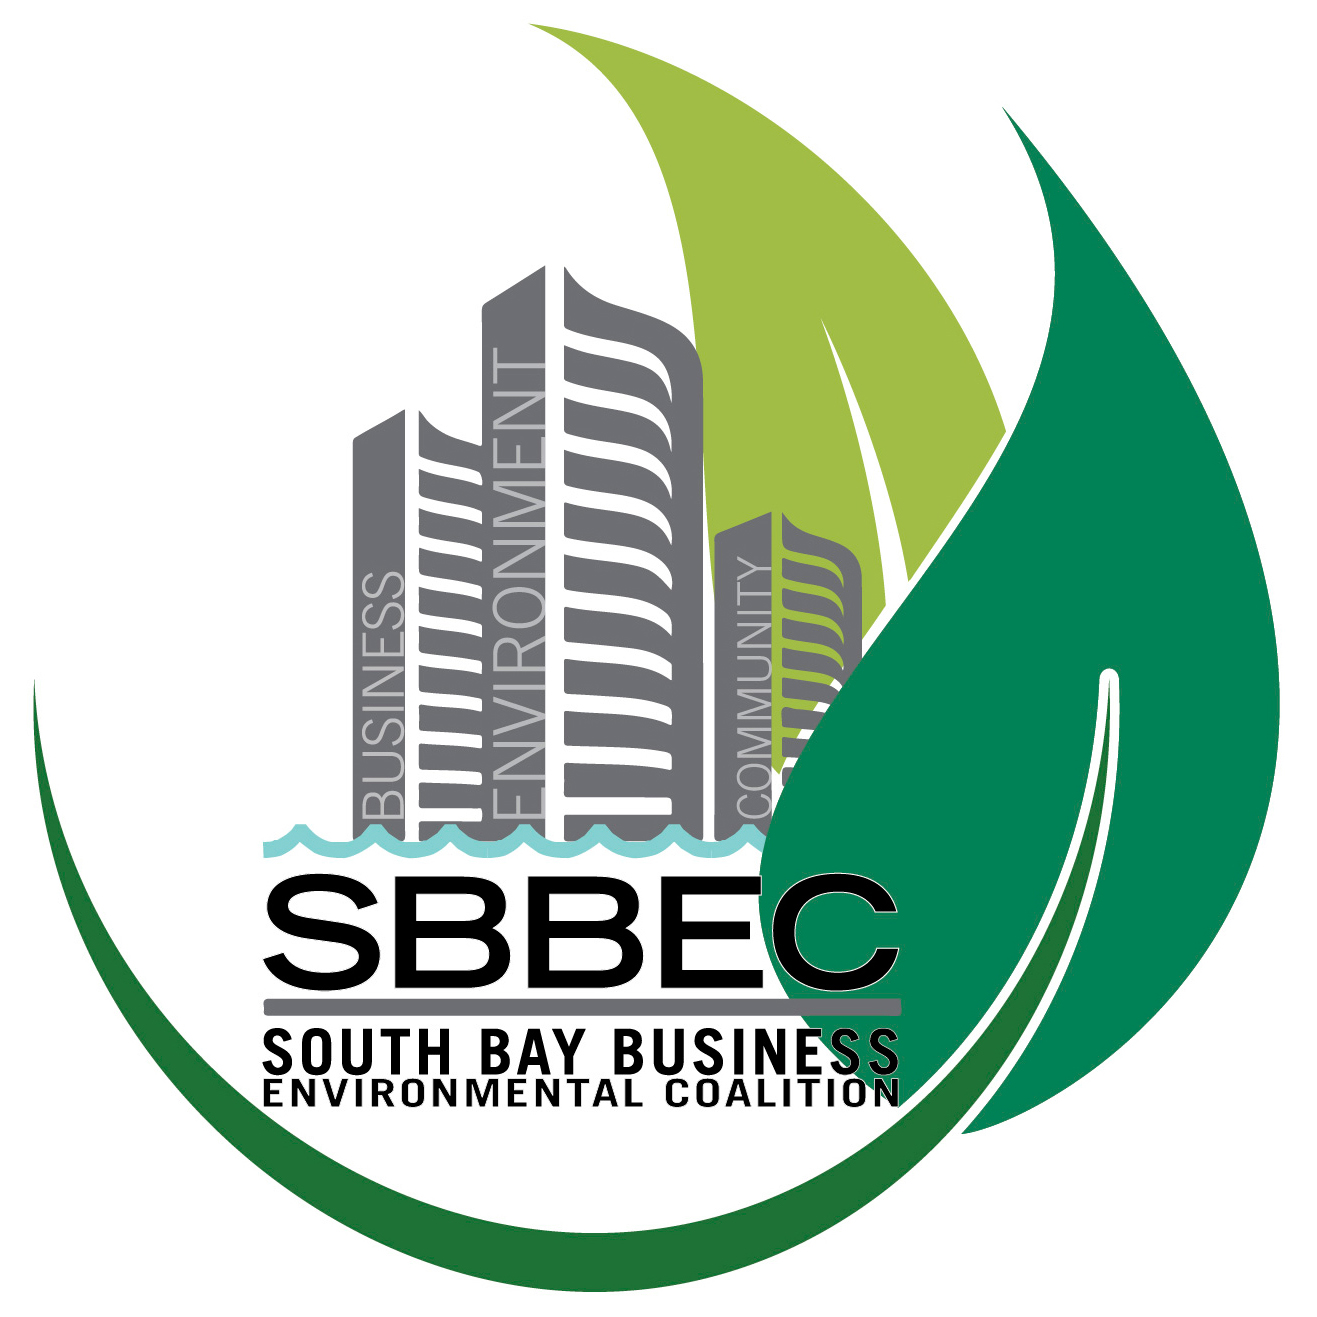 The South Bay Business Environmental Coalition